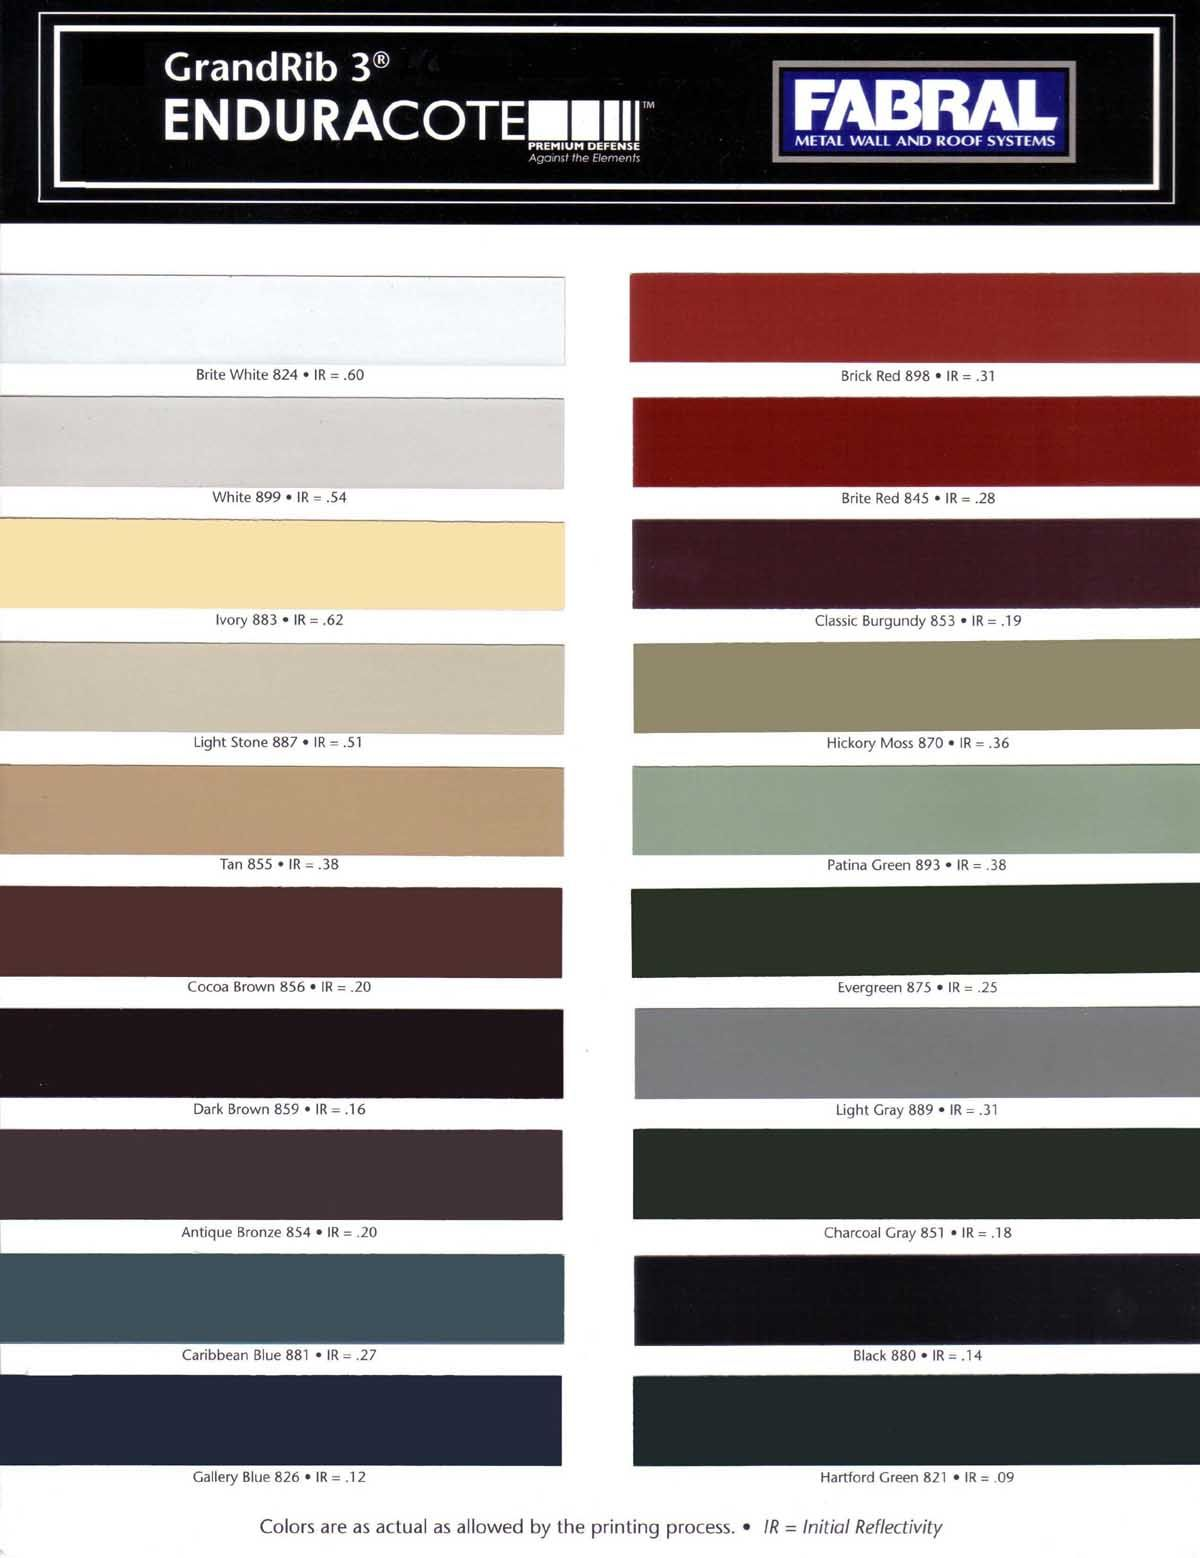 Siding Colors New Jpg 1 200 1 558 Pixels Siding Colors Vinyl